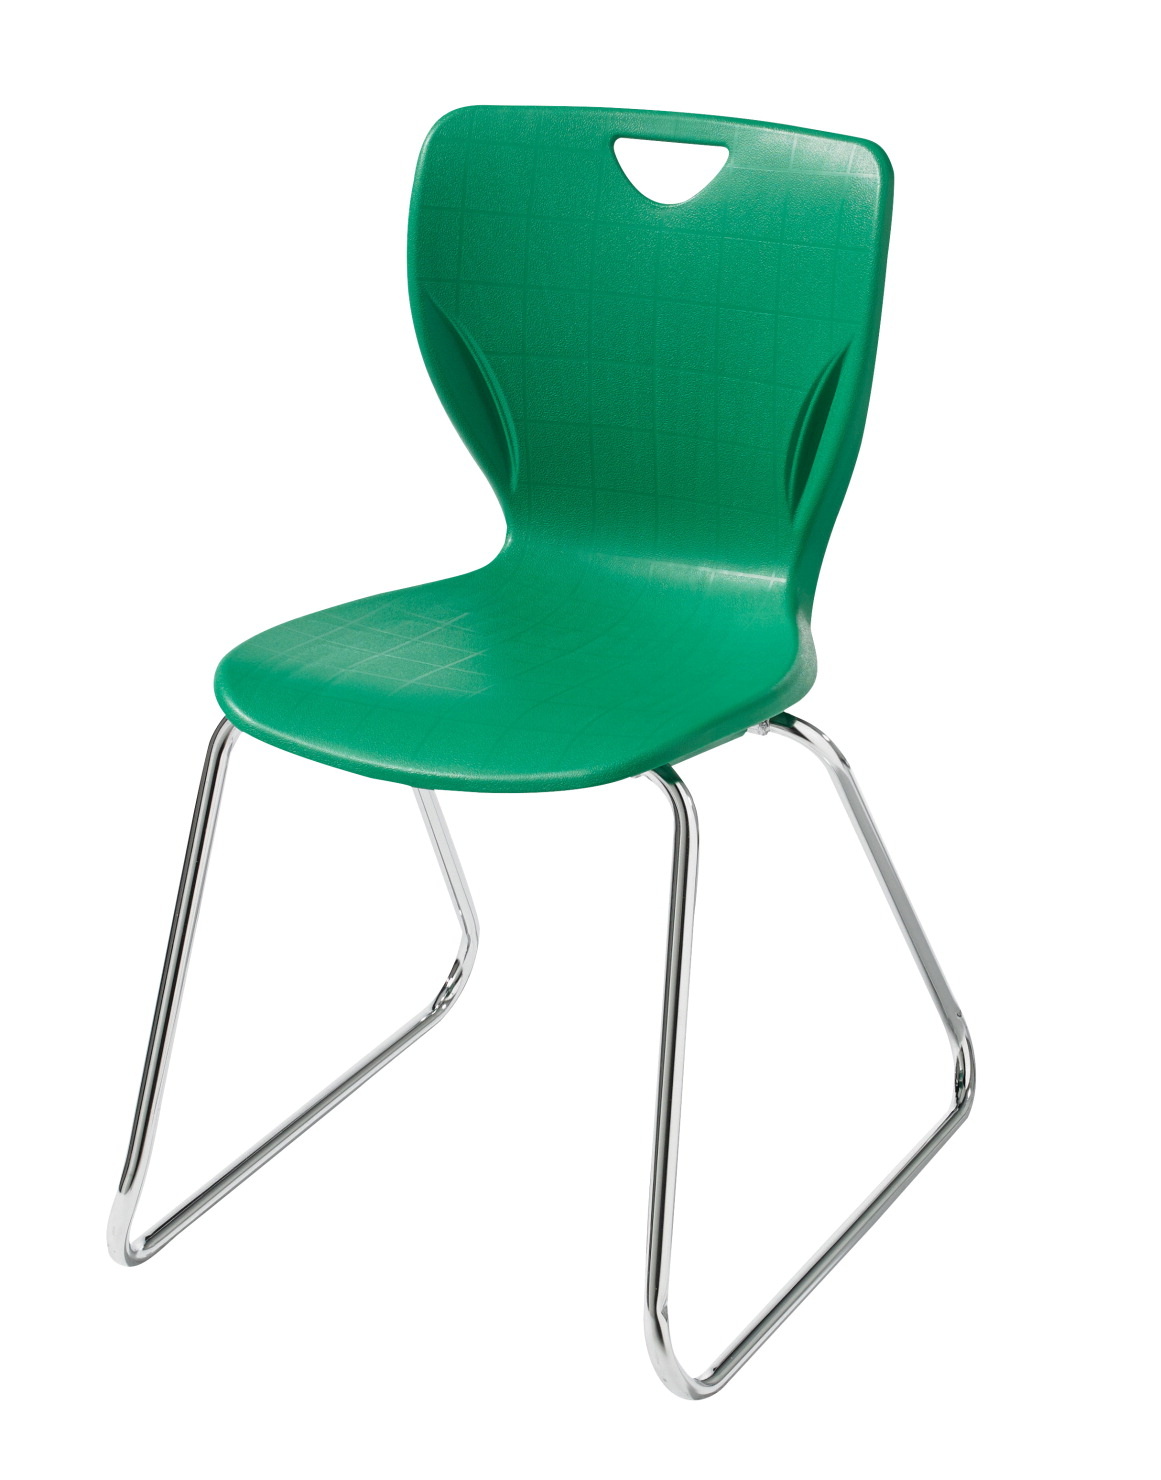 classroom select contemporary sled base chair without glides 16 in